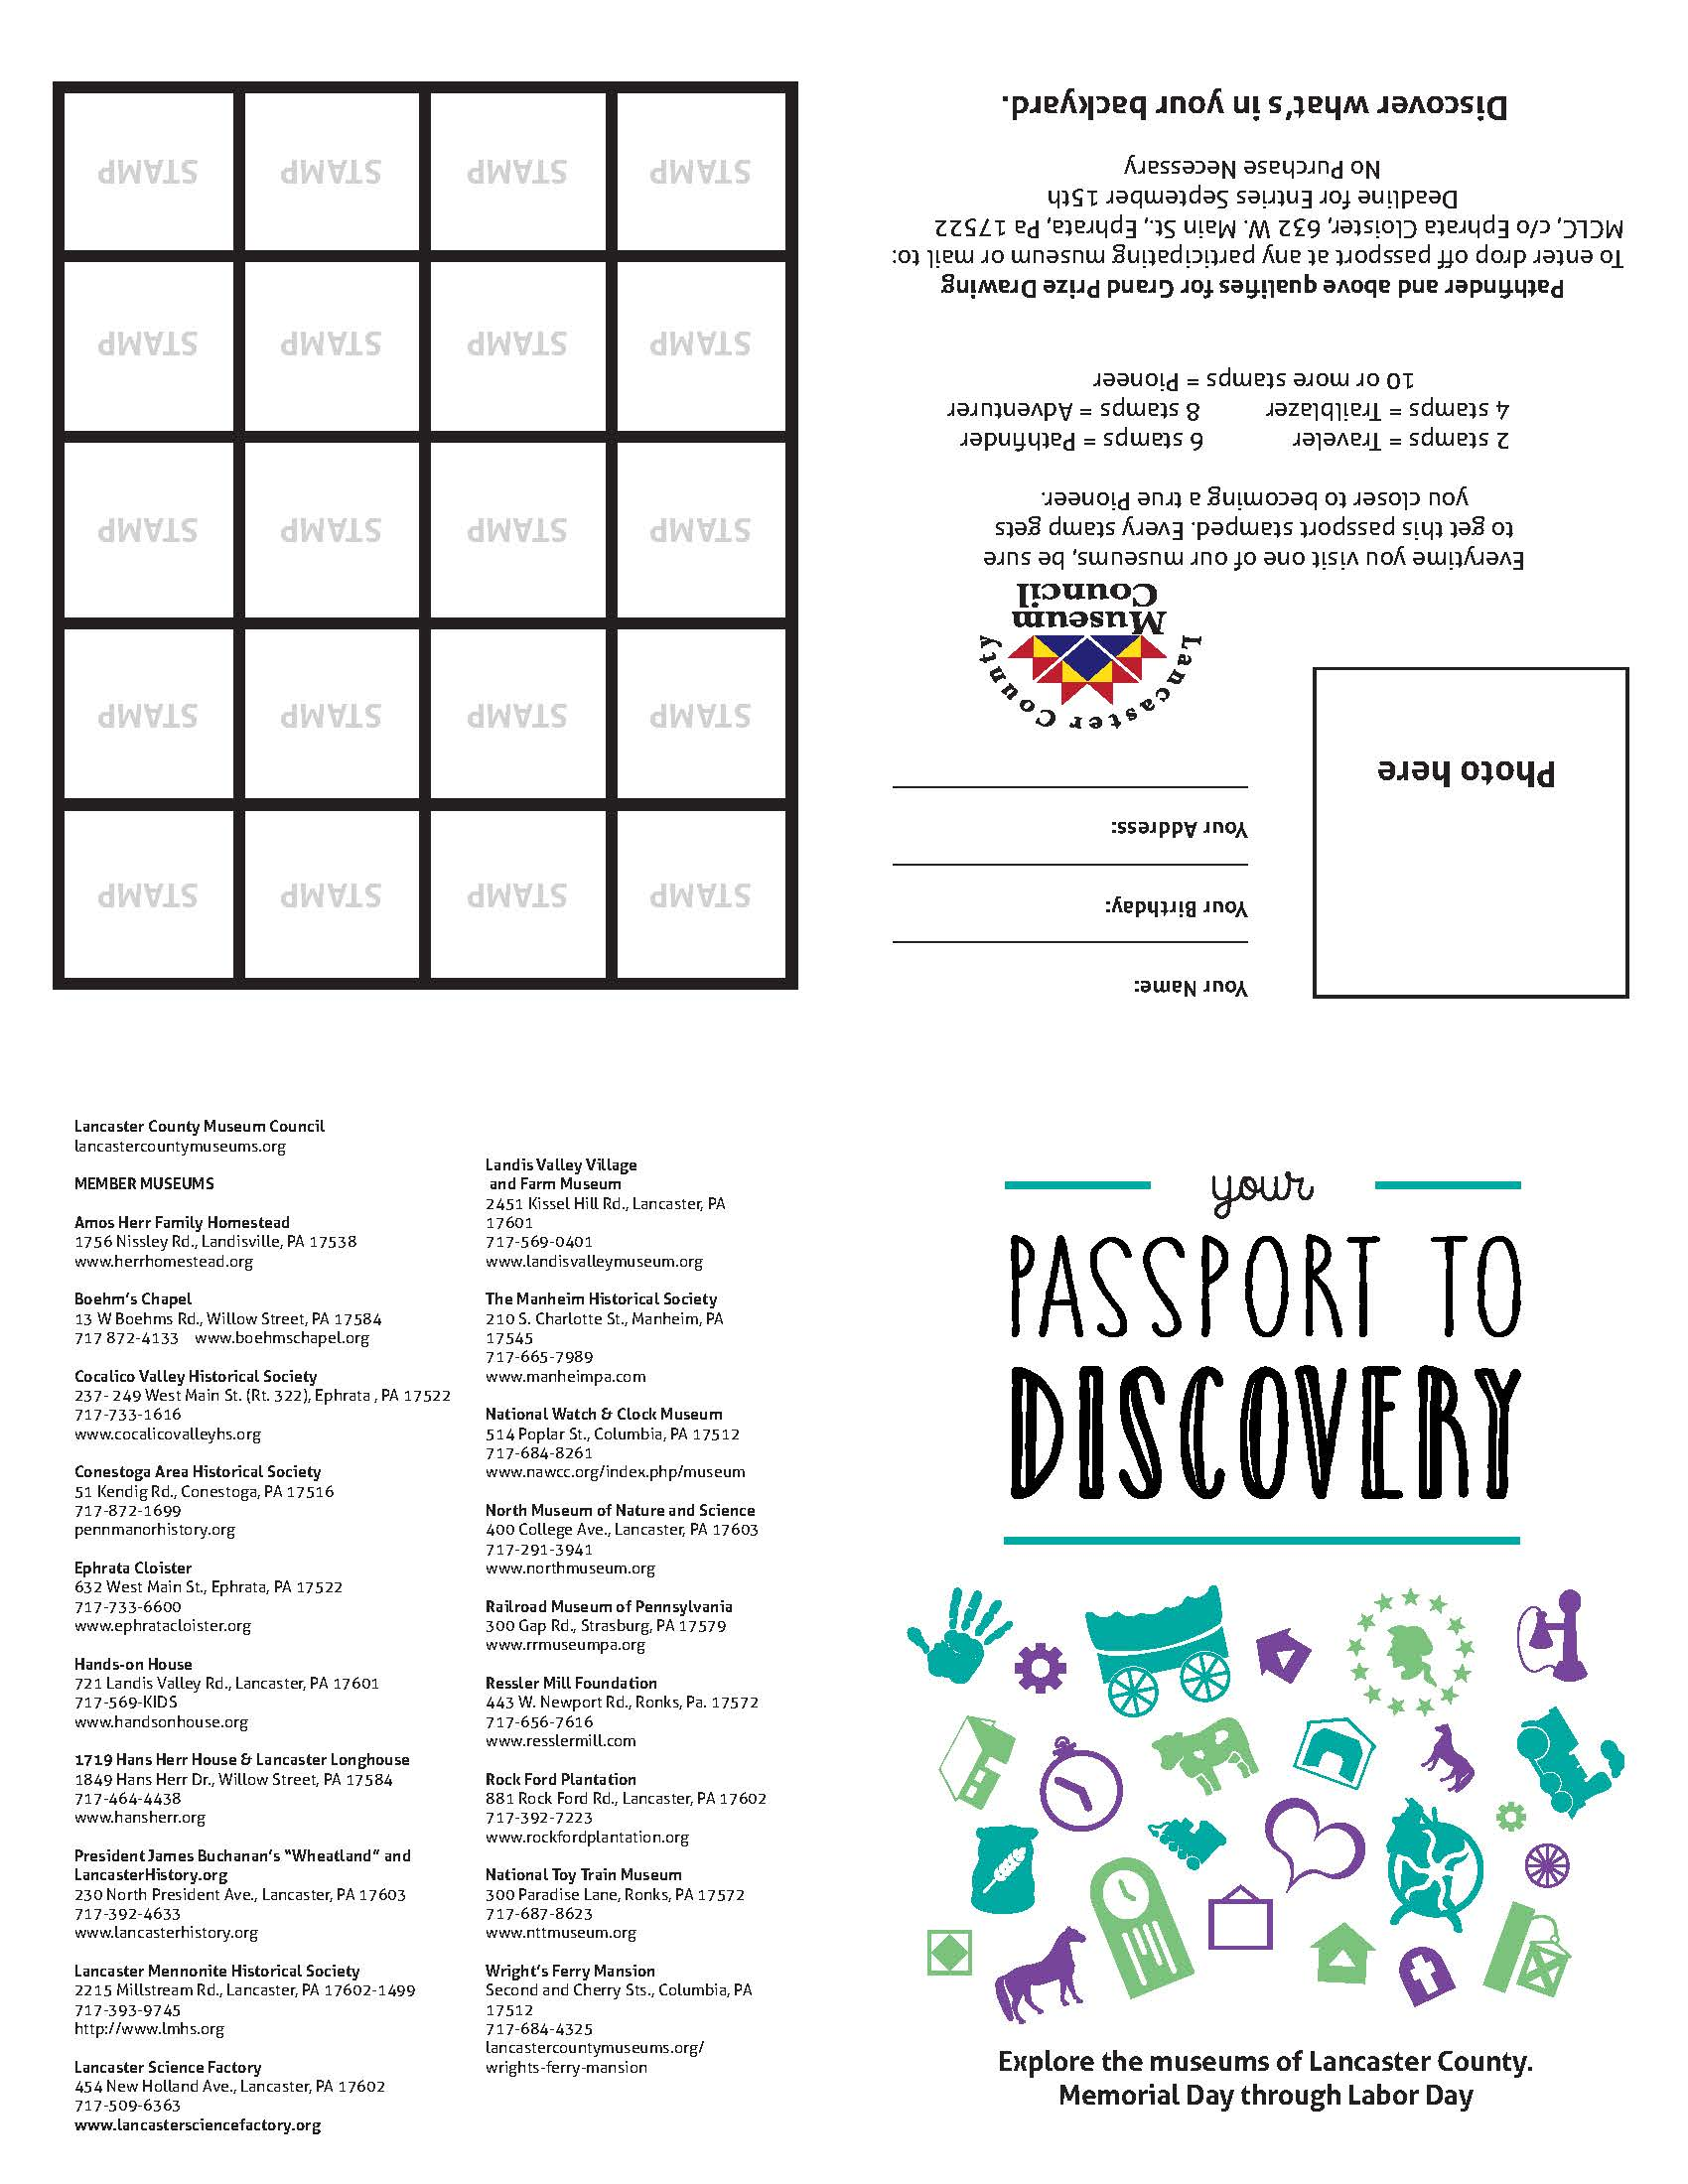 Click Here To Download Your Passport To Discovery